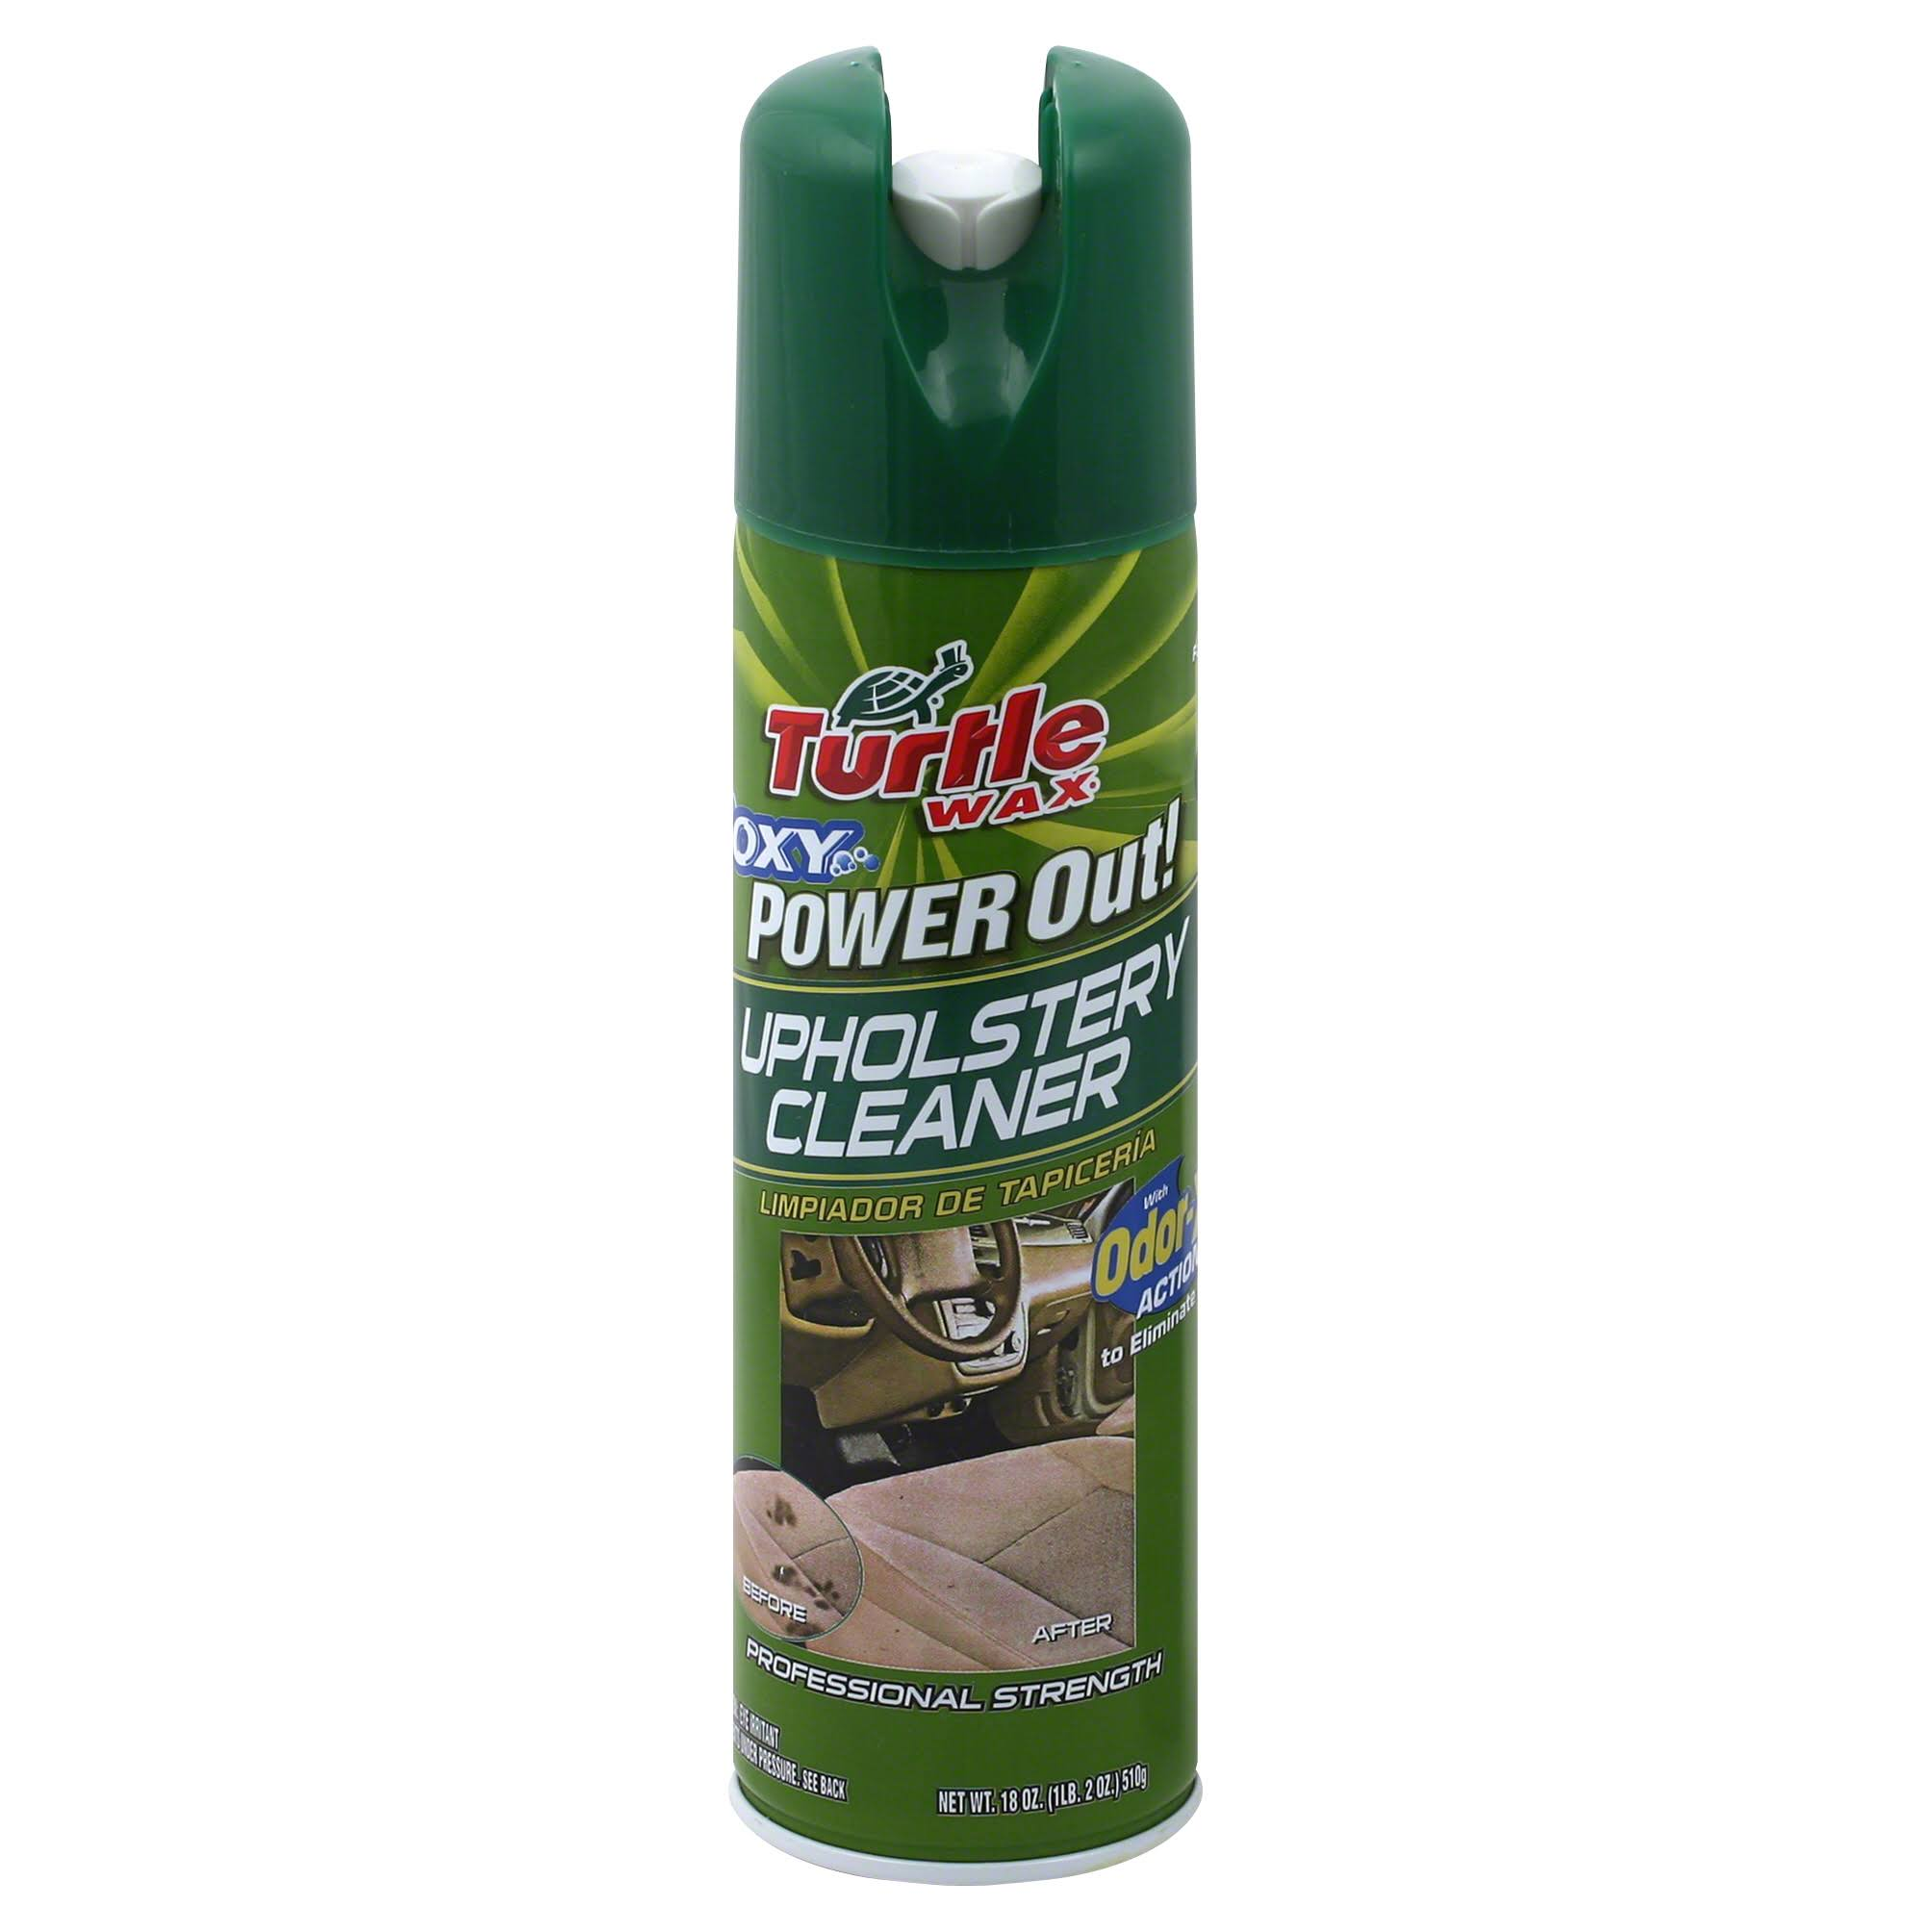 Turtle Wax Power Out! Odor Eliminator Upholstery Cleaner - 18oz